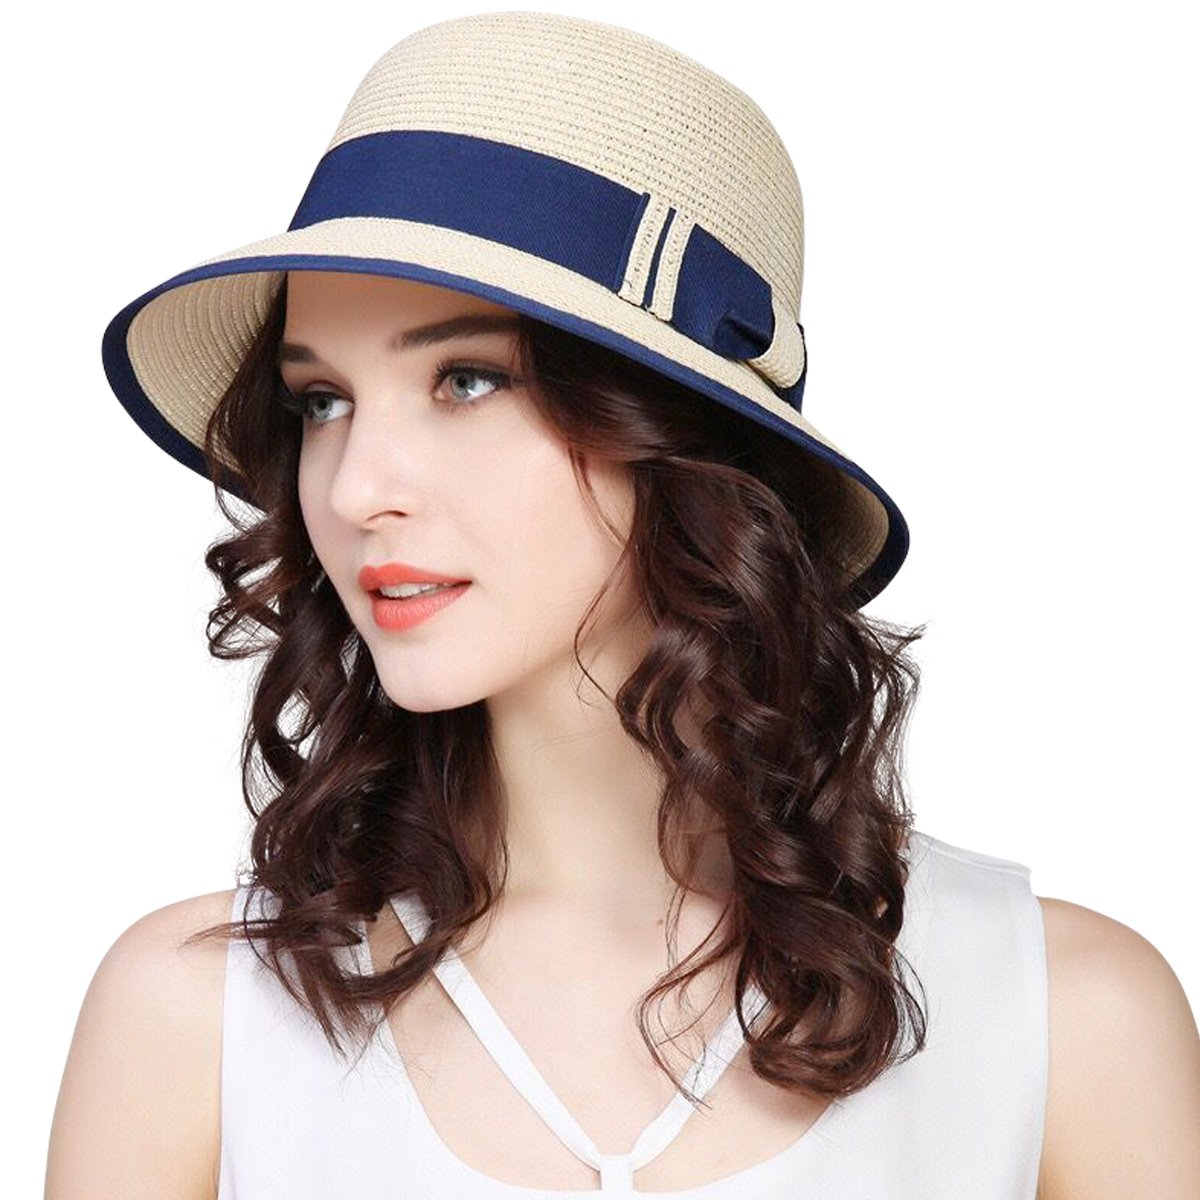 JOYEBUY Women Wide Brim Fedora Beach Sun Hat Straw Summer Packable Cap UPF50+ (A-Beige)